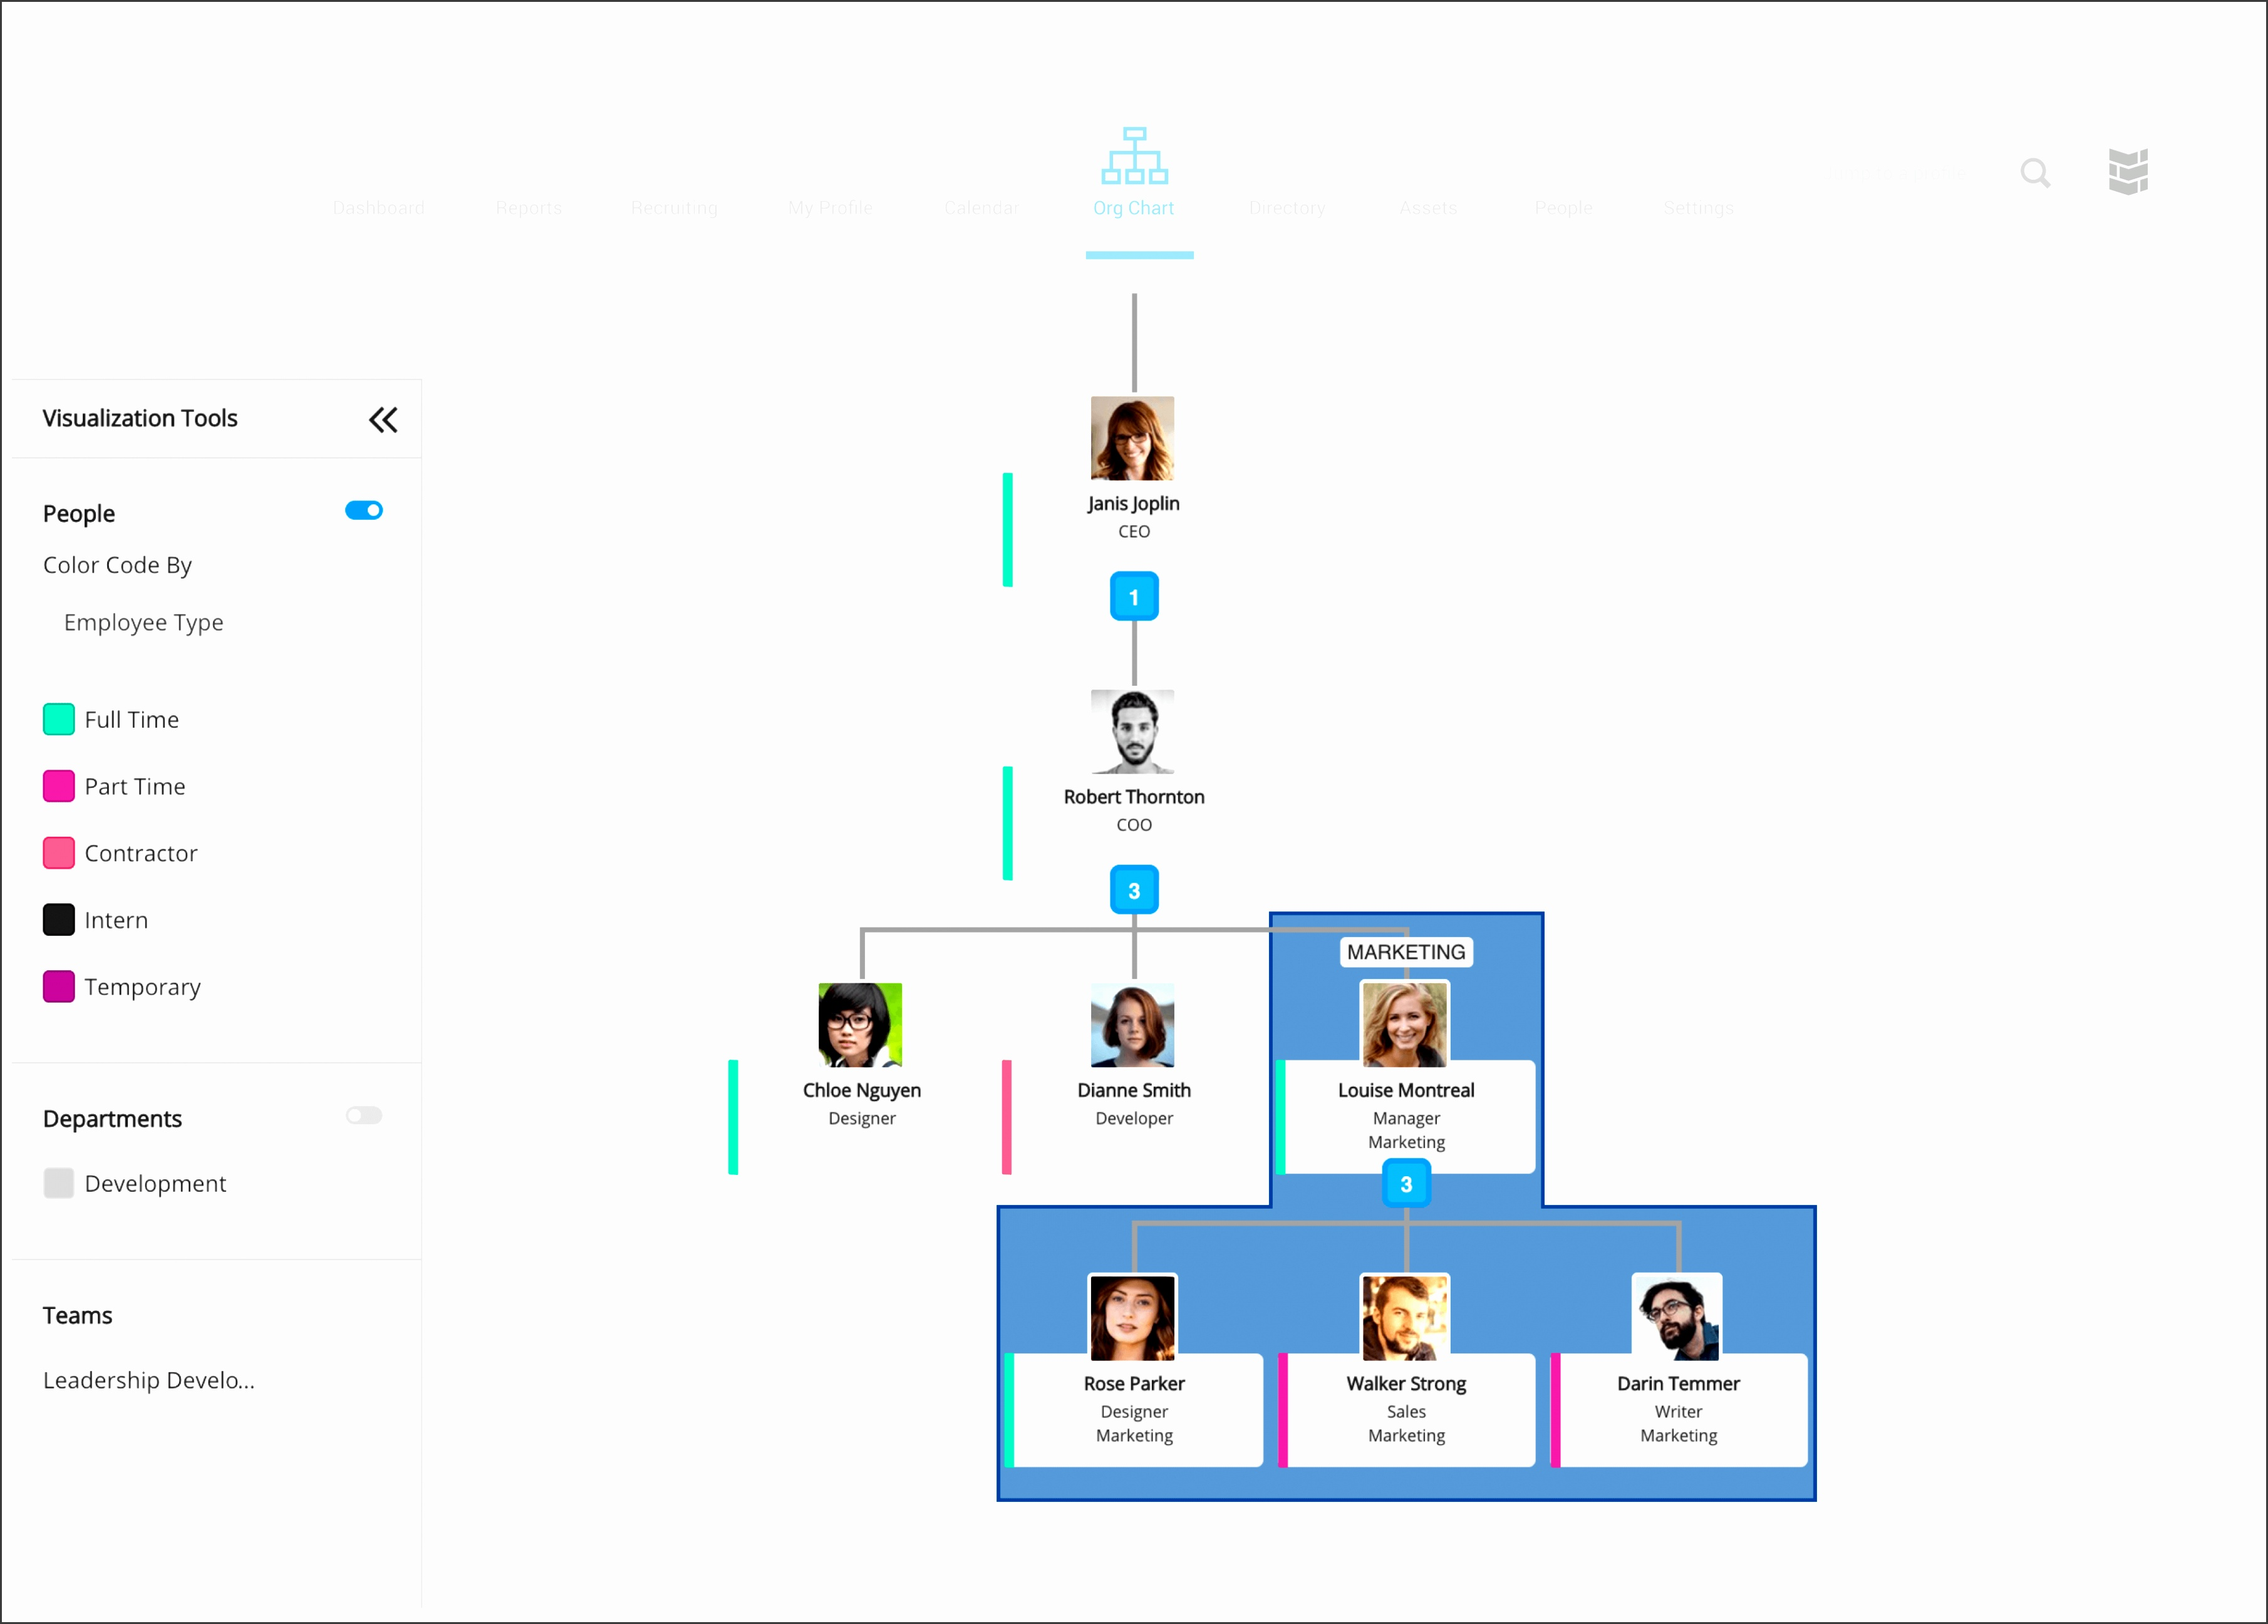 Build format and display org charts with our intuitive organization charts software